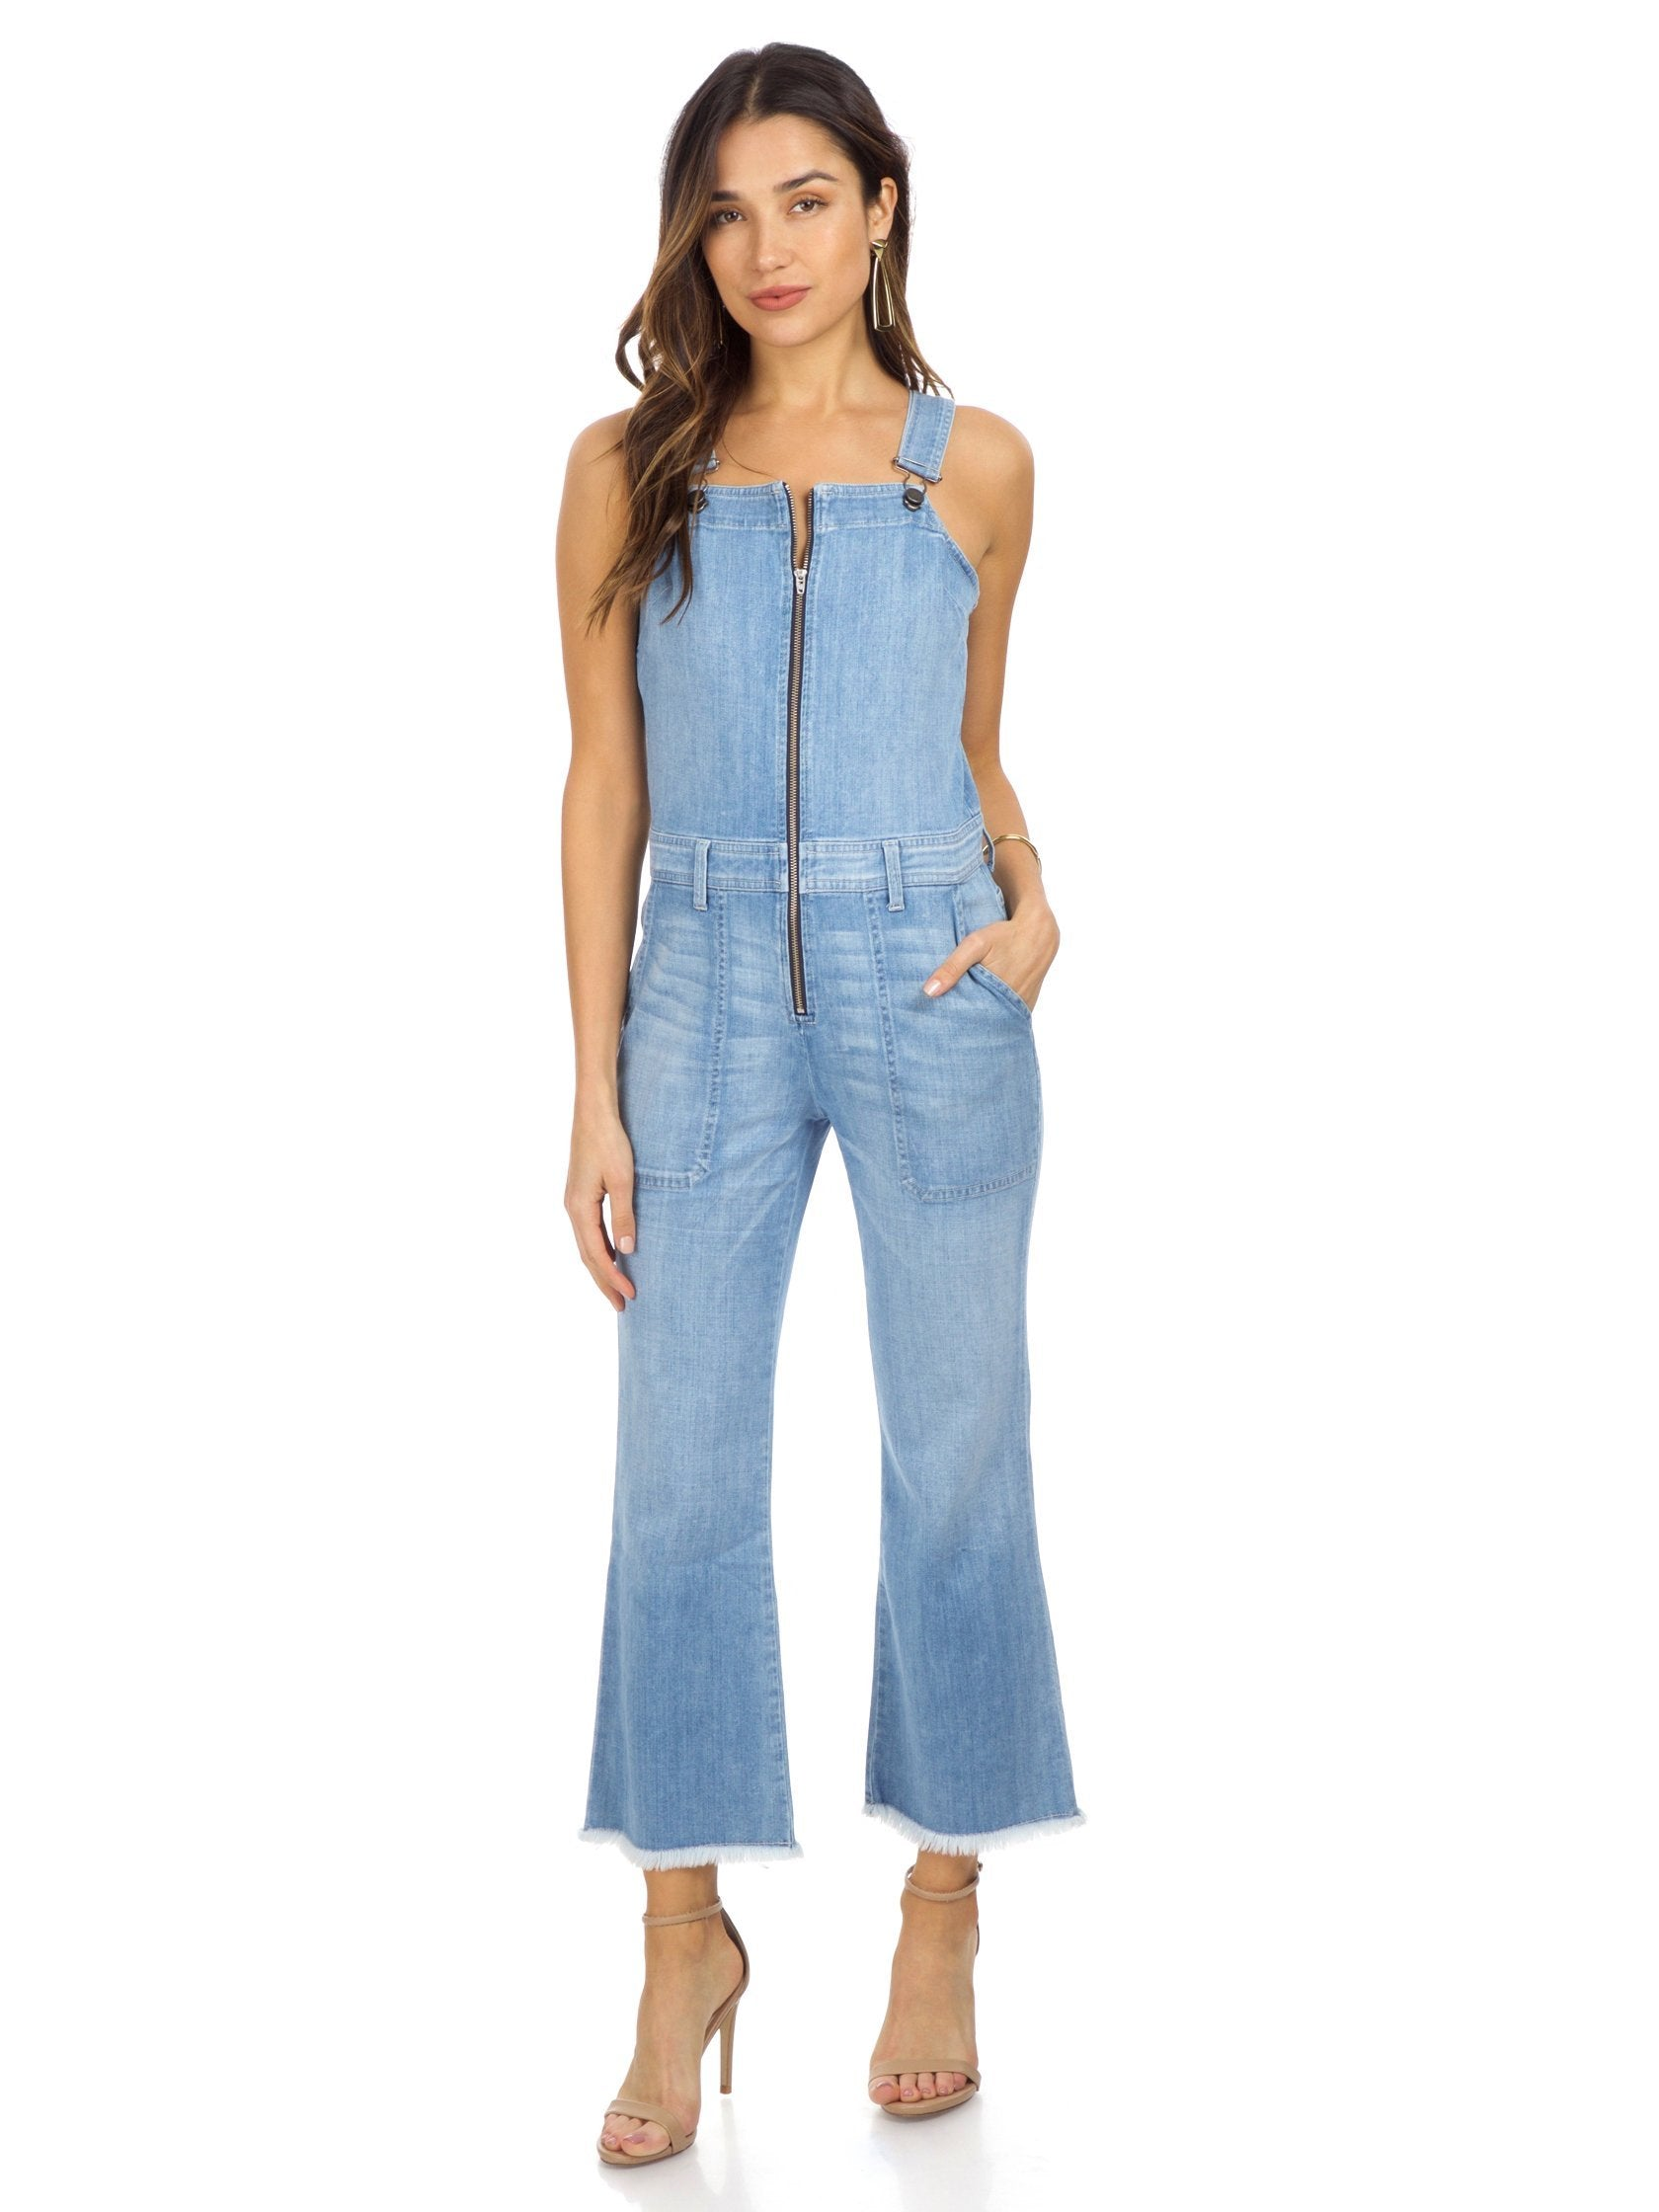 Girl outfit in a jumpsuit rental from ei8ht dreams called Flare Overall